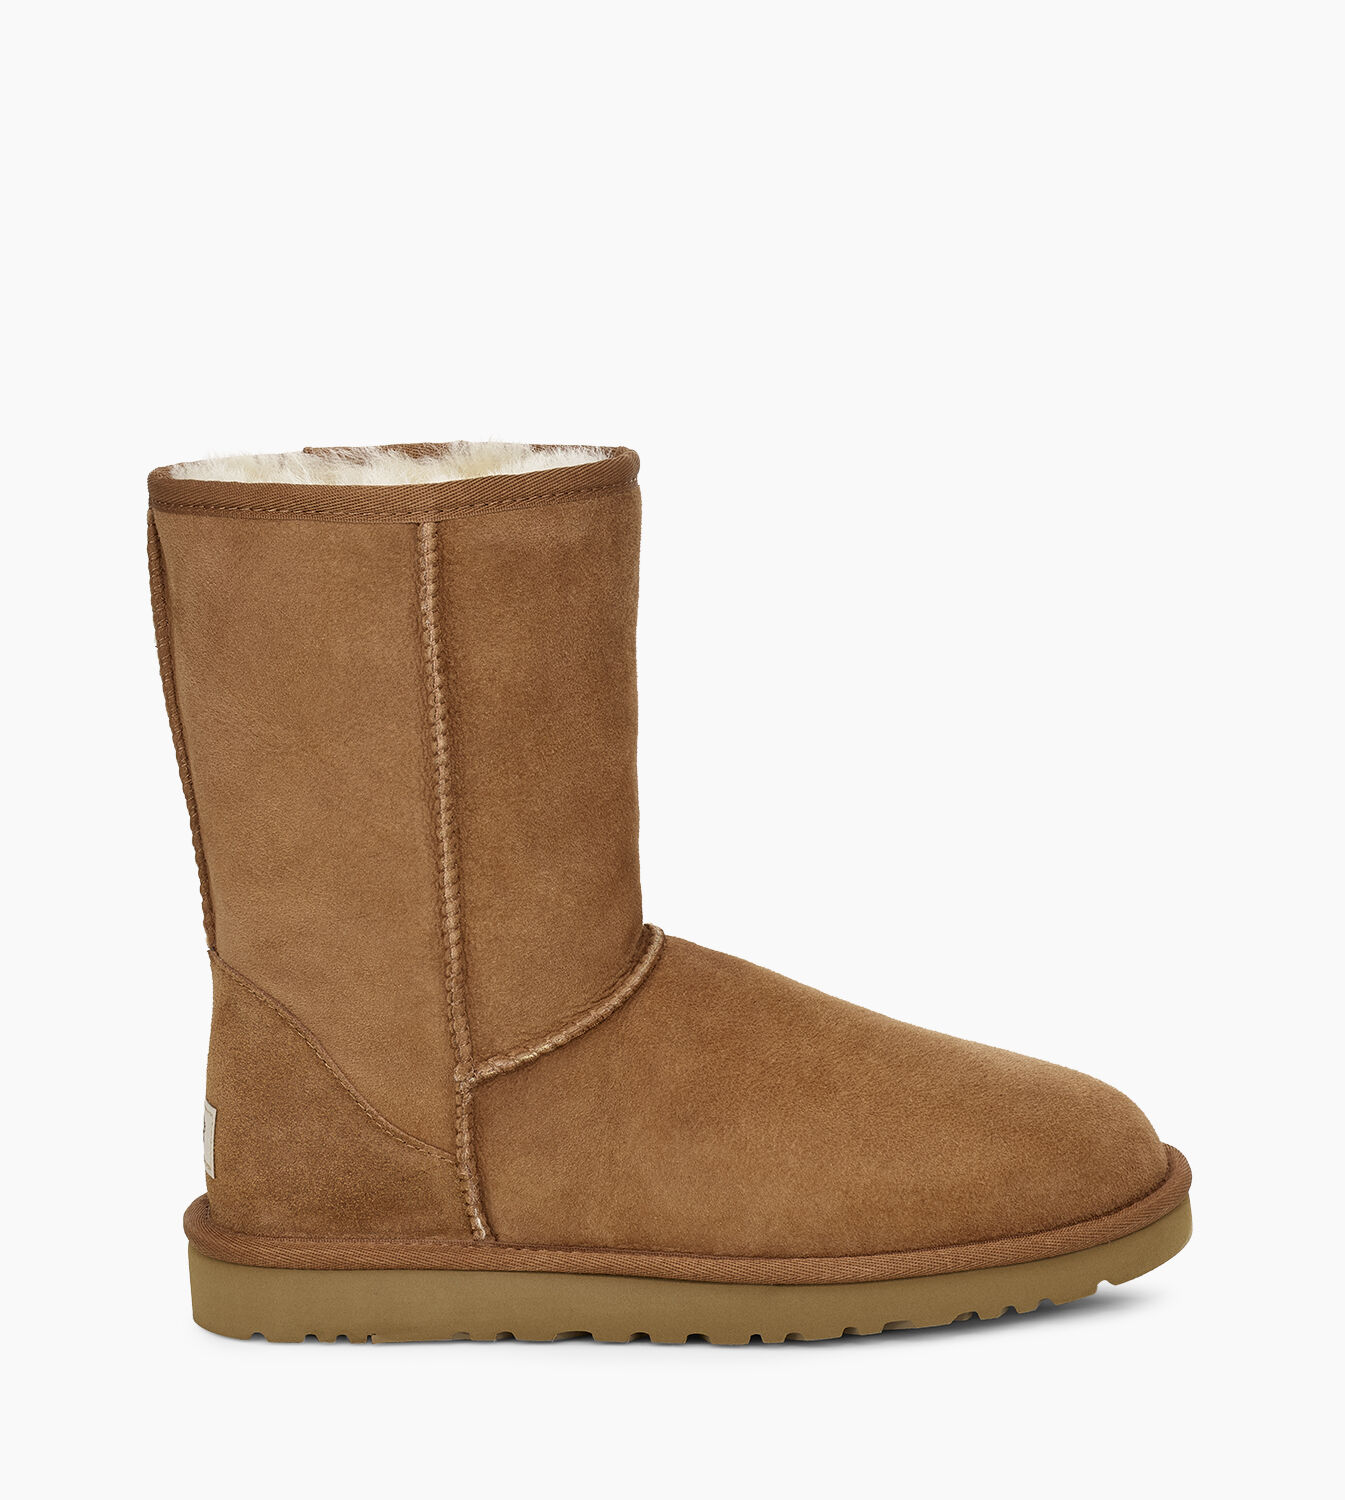 Zoom Classic Short Boot - Image 1 of 6